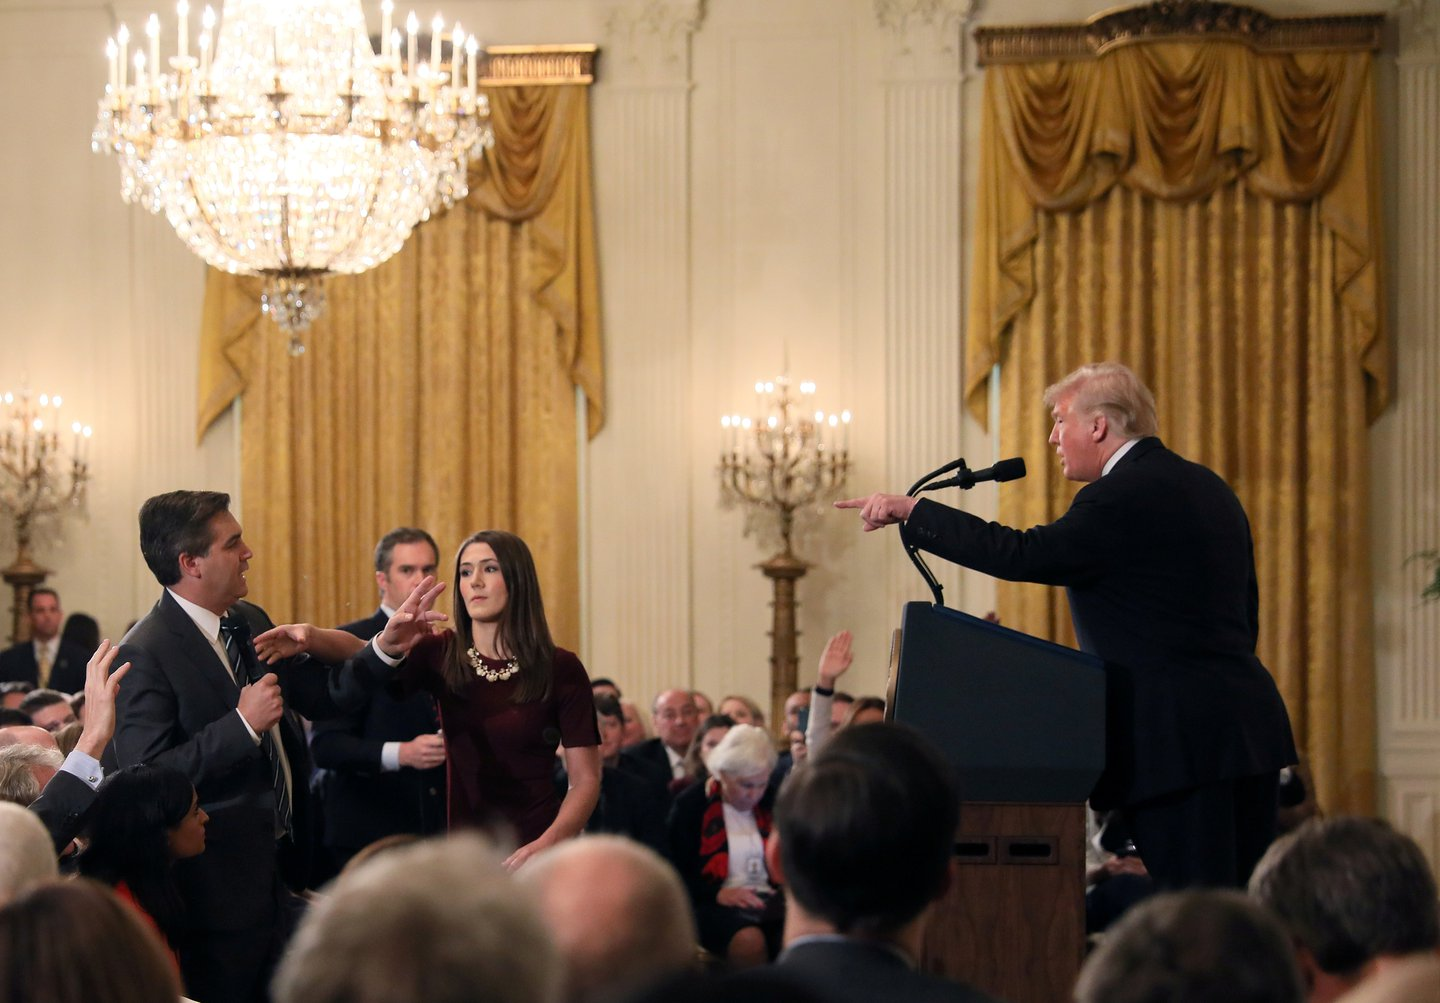 White House intern reaches for Jim Acosta's microphone